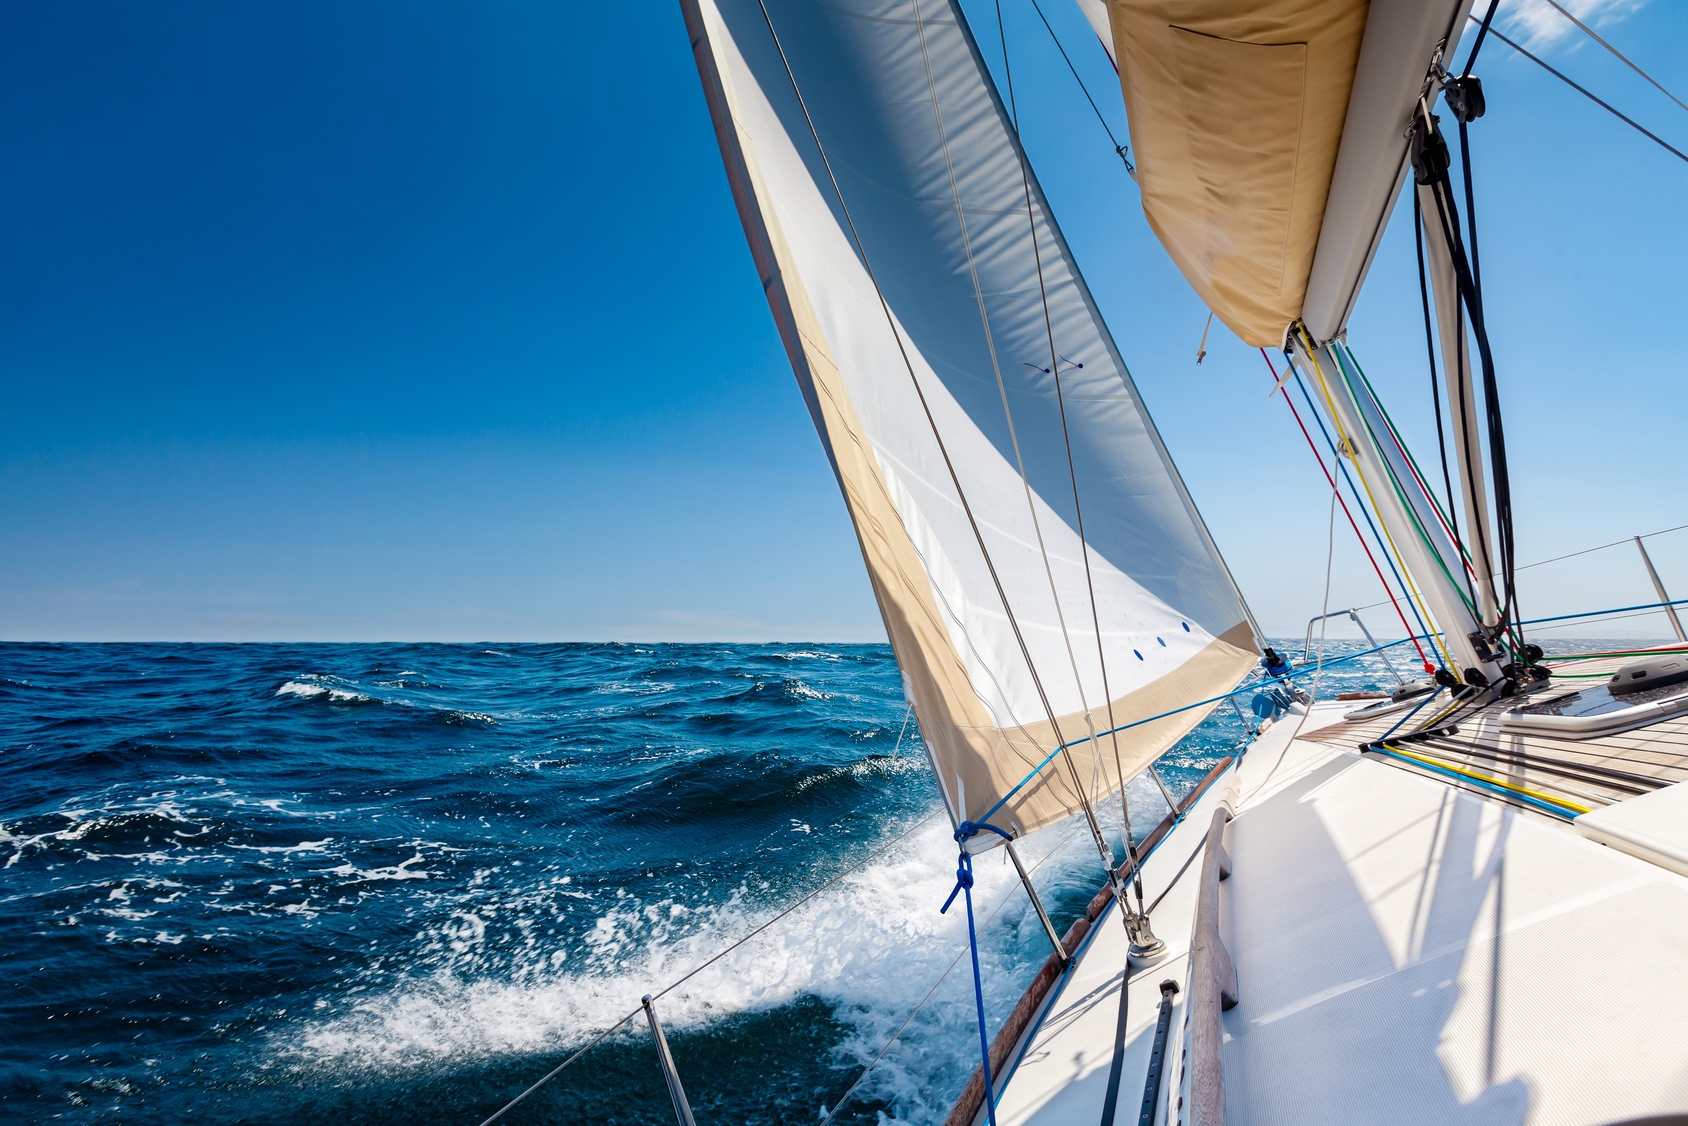 How to Get into Yachting: Cruising and Racing